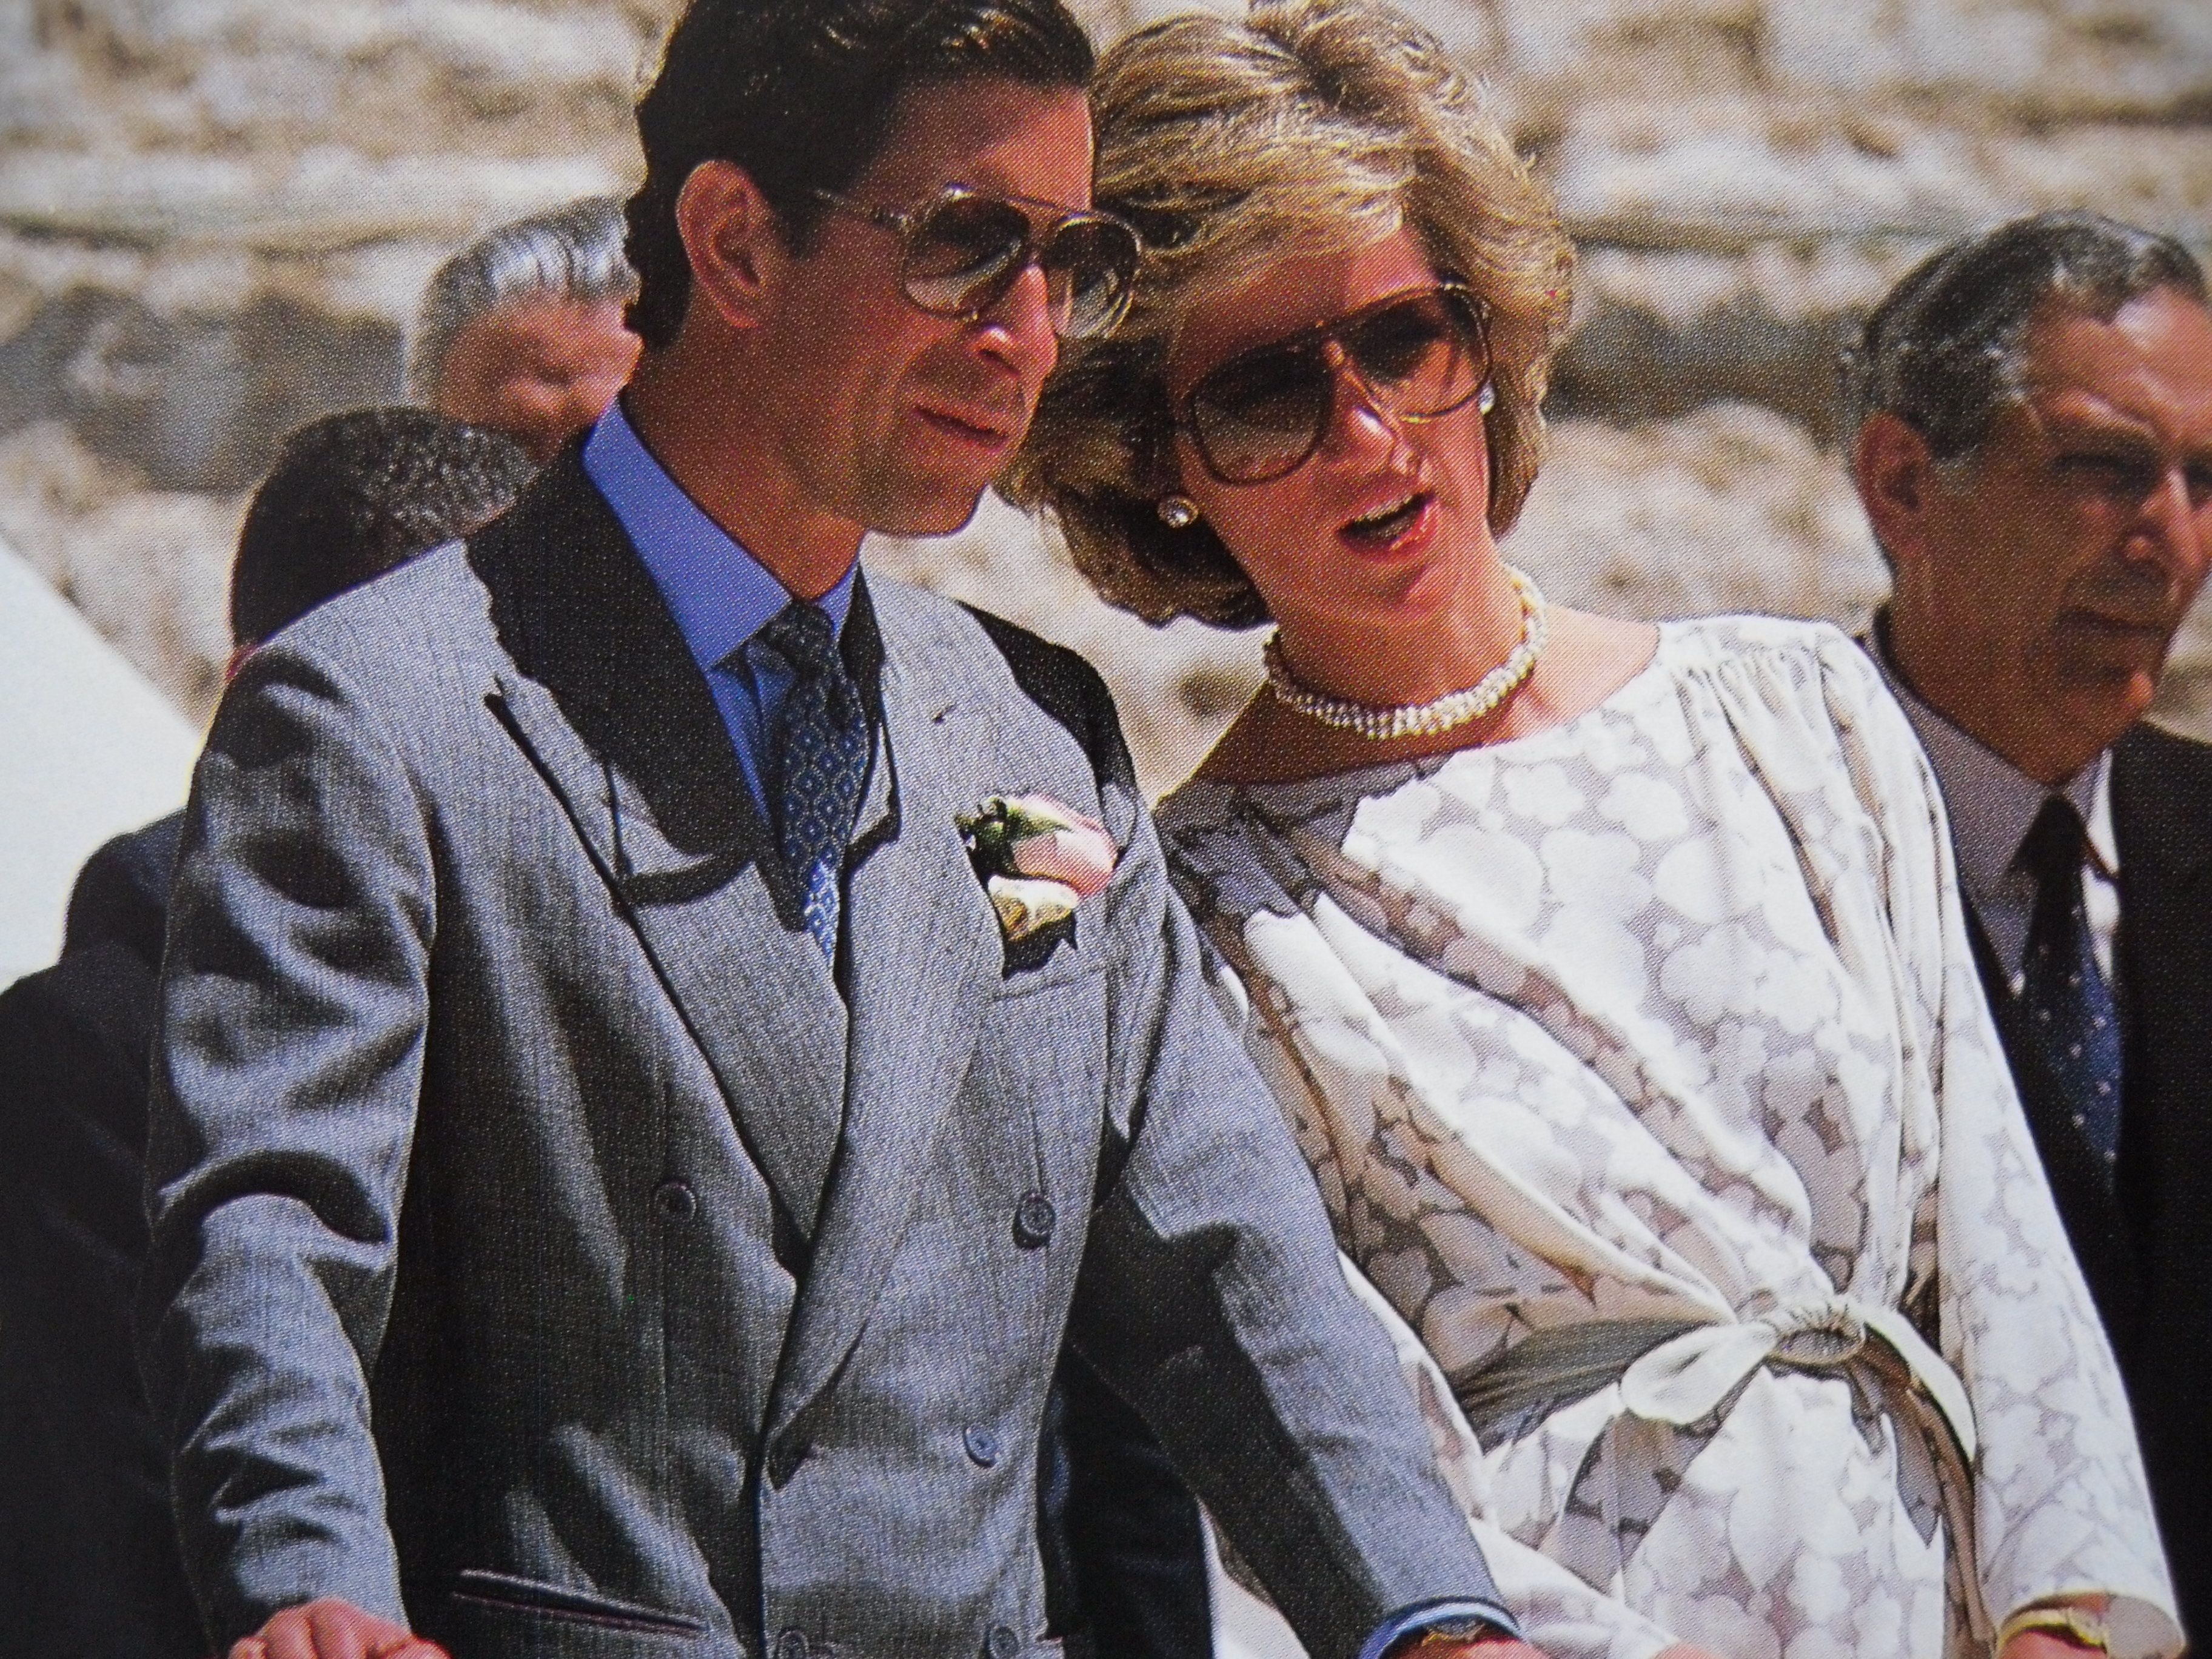 May 2, 1985: Prince Charles & Princess Diana visit the Cathedral in Bari &Trani & are received by a large crowd. Later, they visit a school for deaf children at Molfetta & watch them in a dance. Day 14